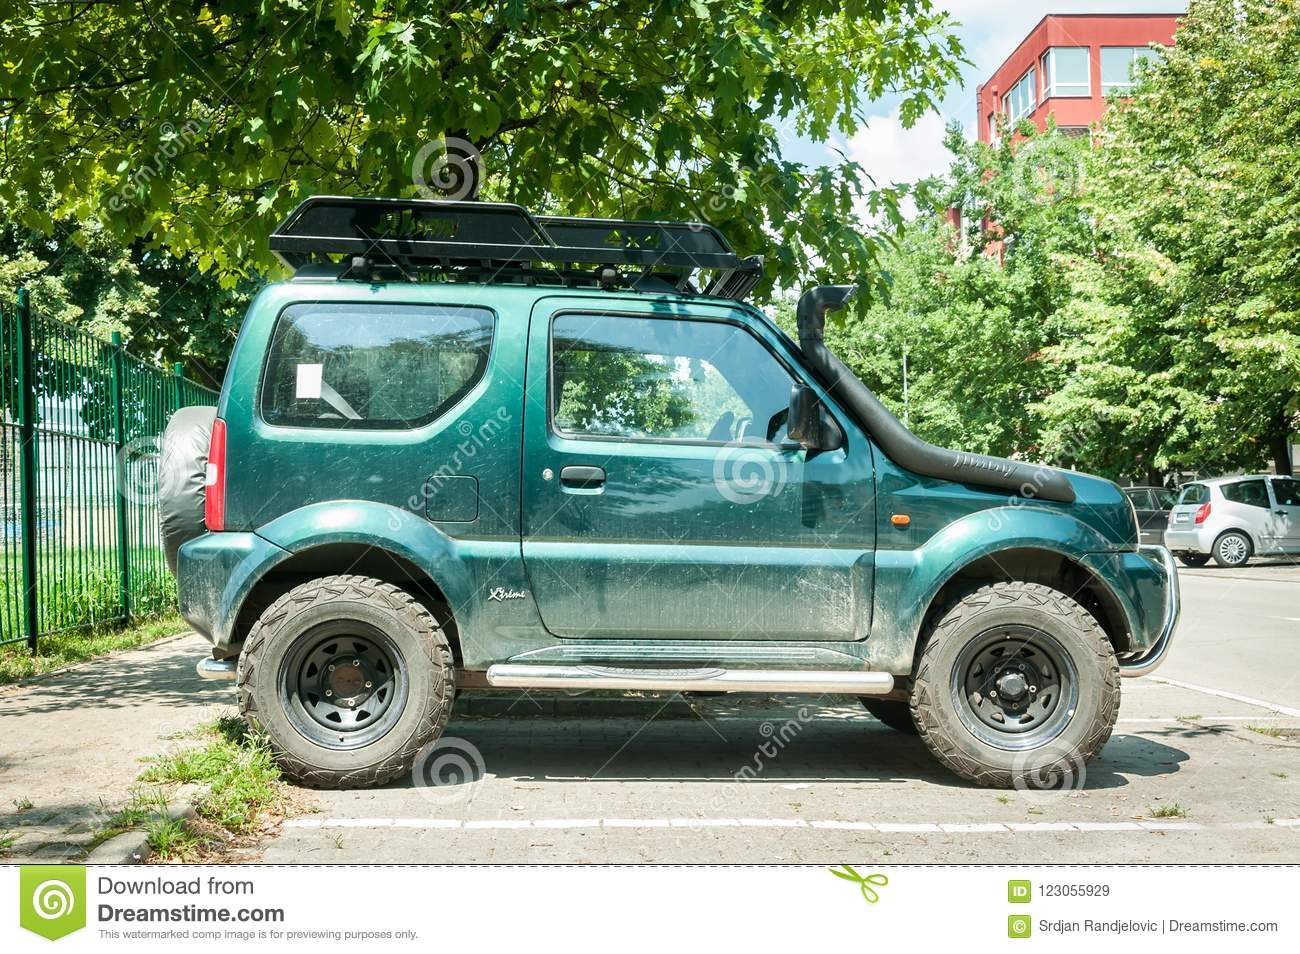 Used Green Dirty Suzuki Jimny 4x4 SUV Off Road Car Parked On